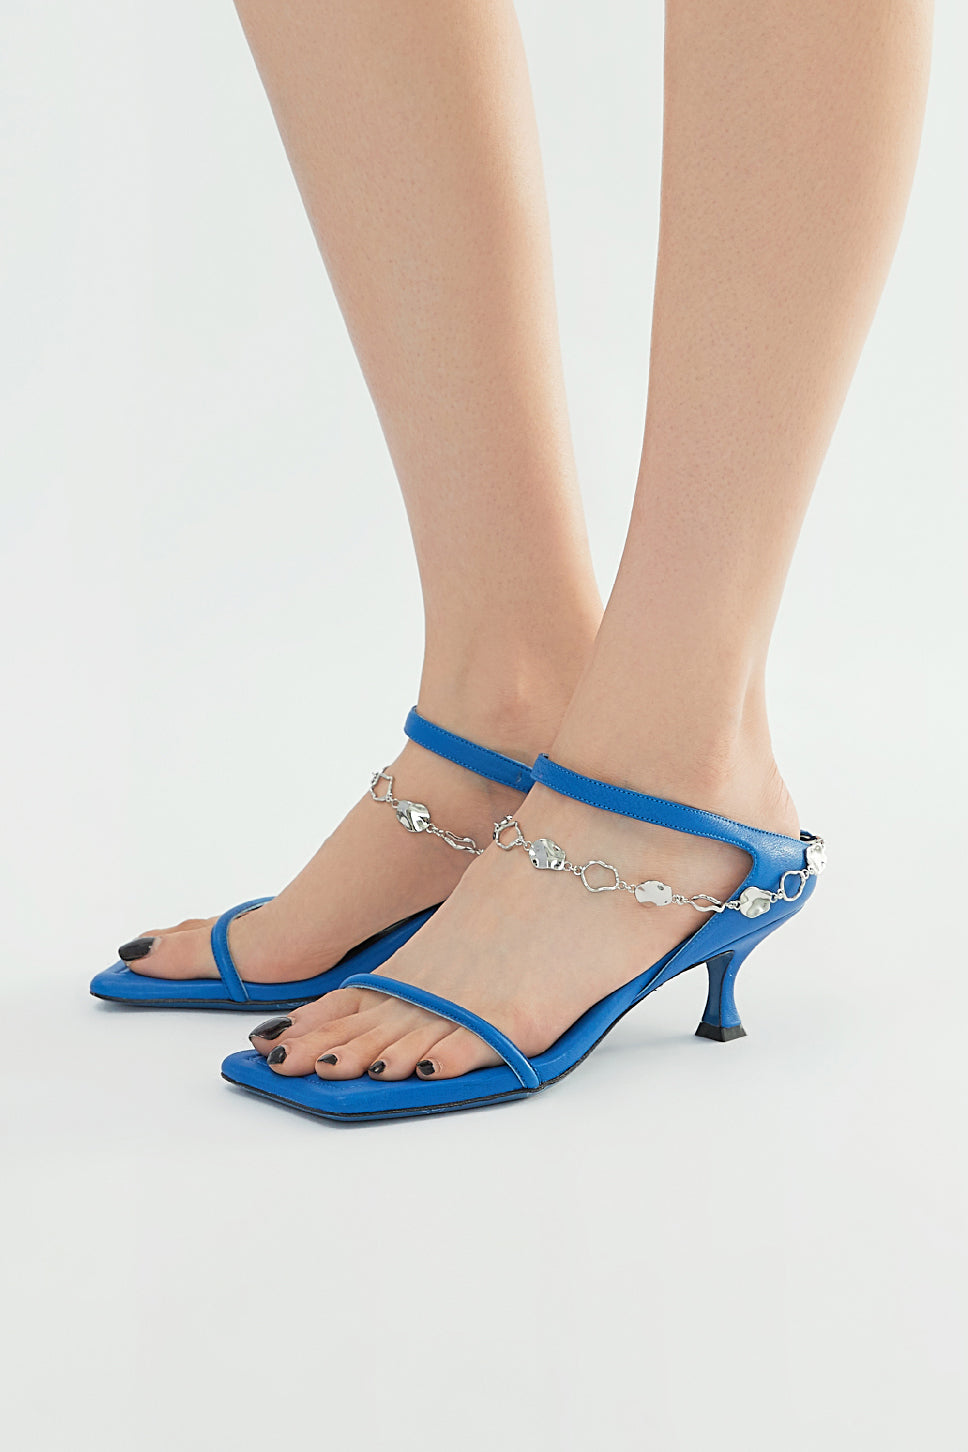 Paz Metal Chain Square Slippers - Blue